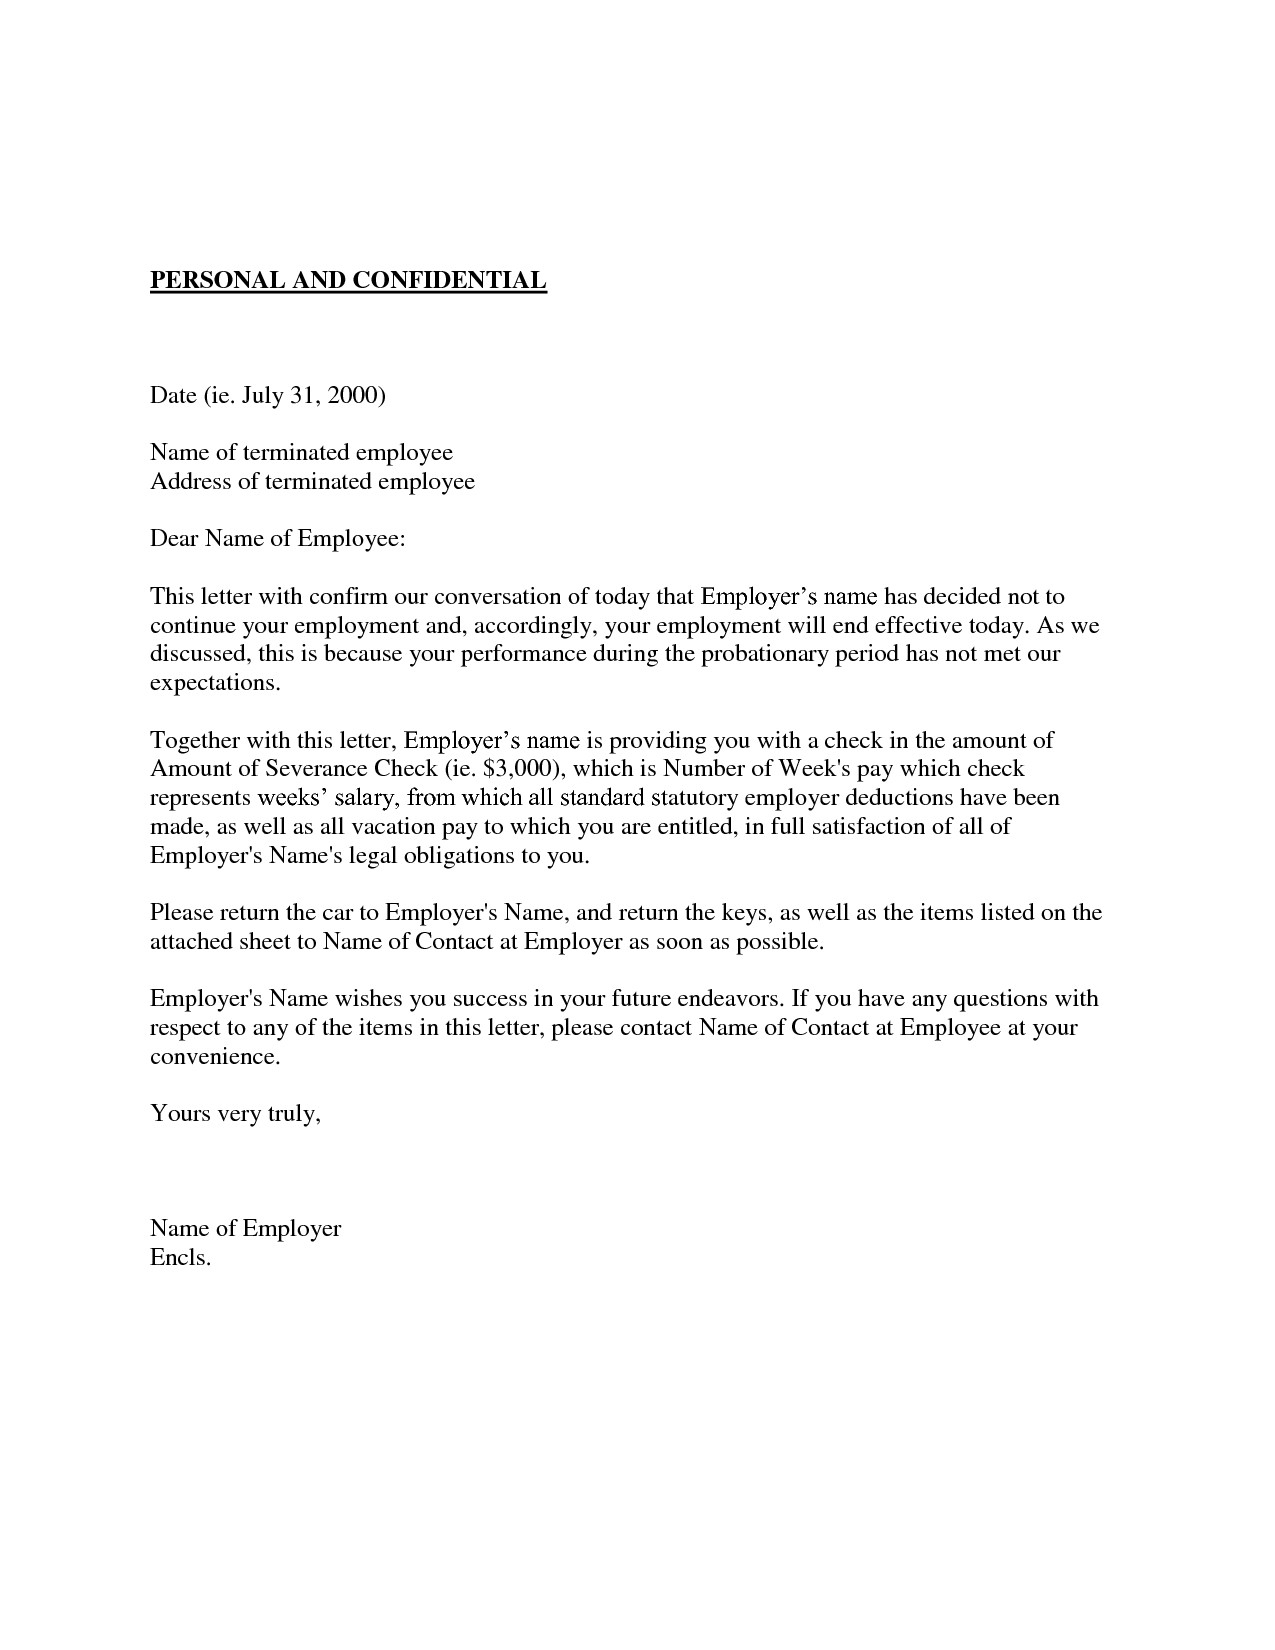 Probation Termination Letter Template - Sample Certificate Employment and Pensation Fresh Employment